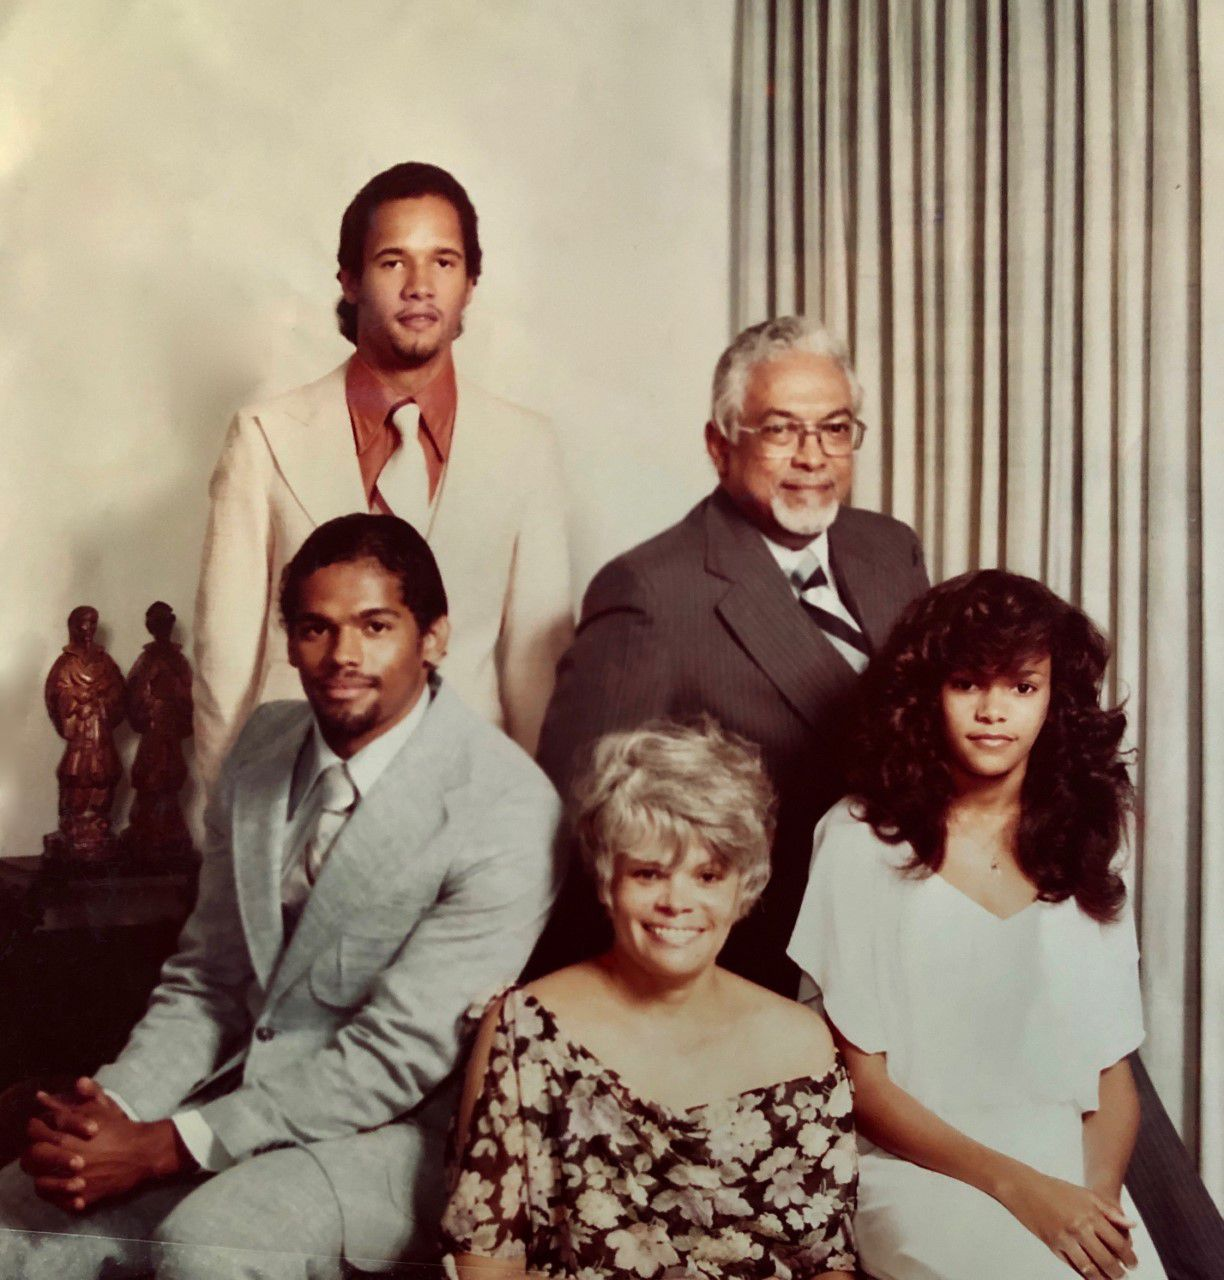 The Brooks family poses for a photo in 1978. The author, Michael Brooks, is in the back left. His father, Dr. Donald Brooks, is back right. Front row, left to right, is older brother Ralph Brooks, mother Gloria Brooks, and sister Gloria Anne Brooks.